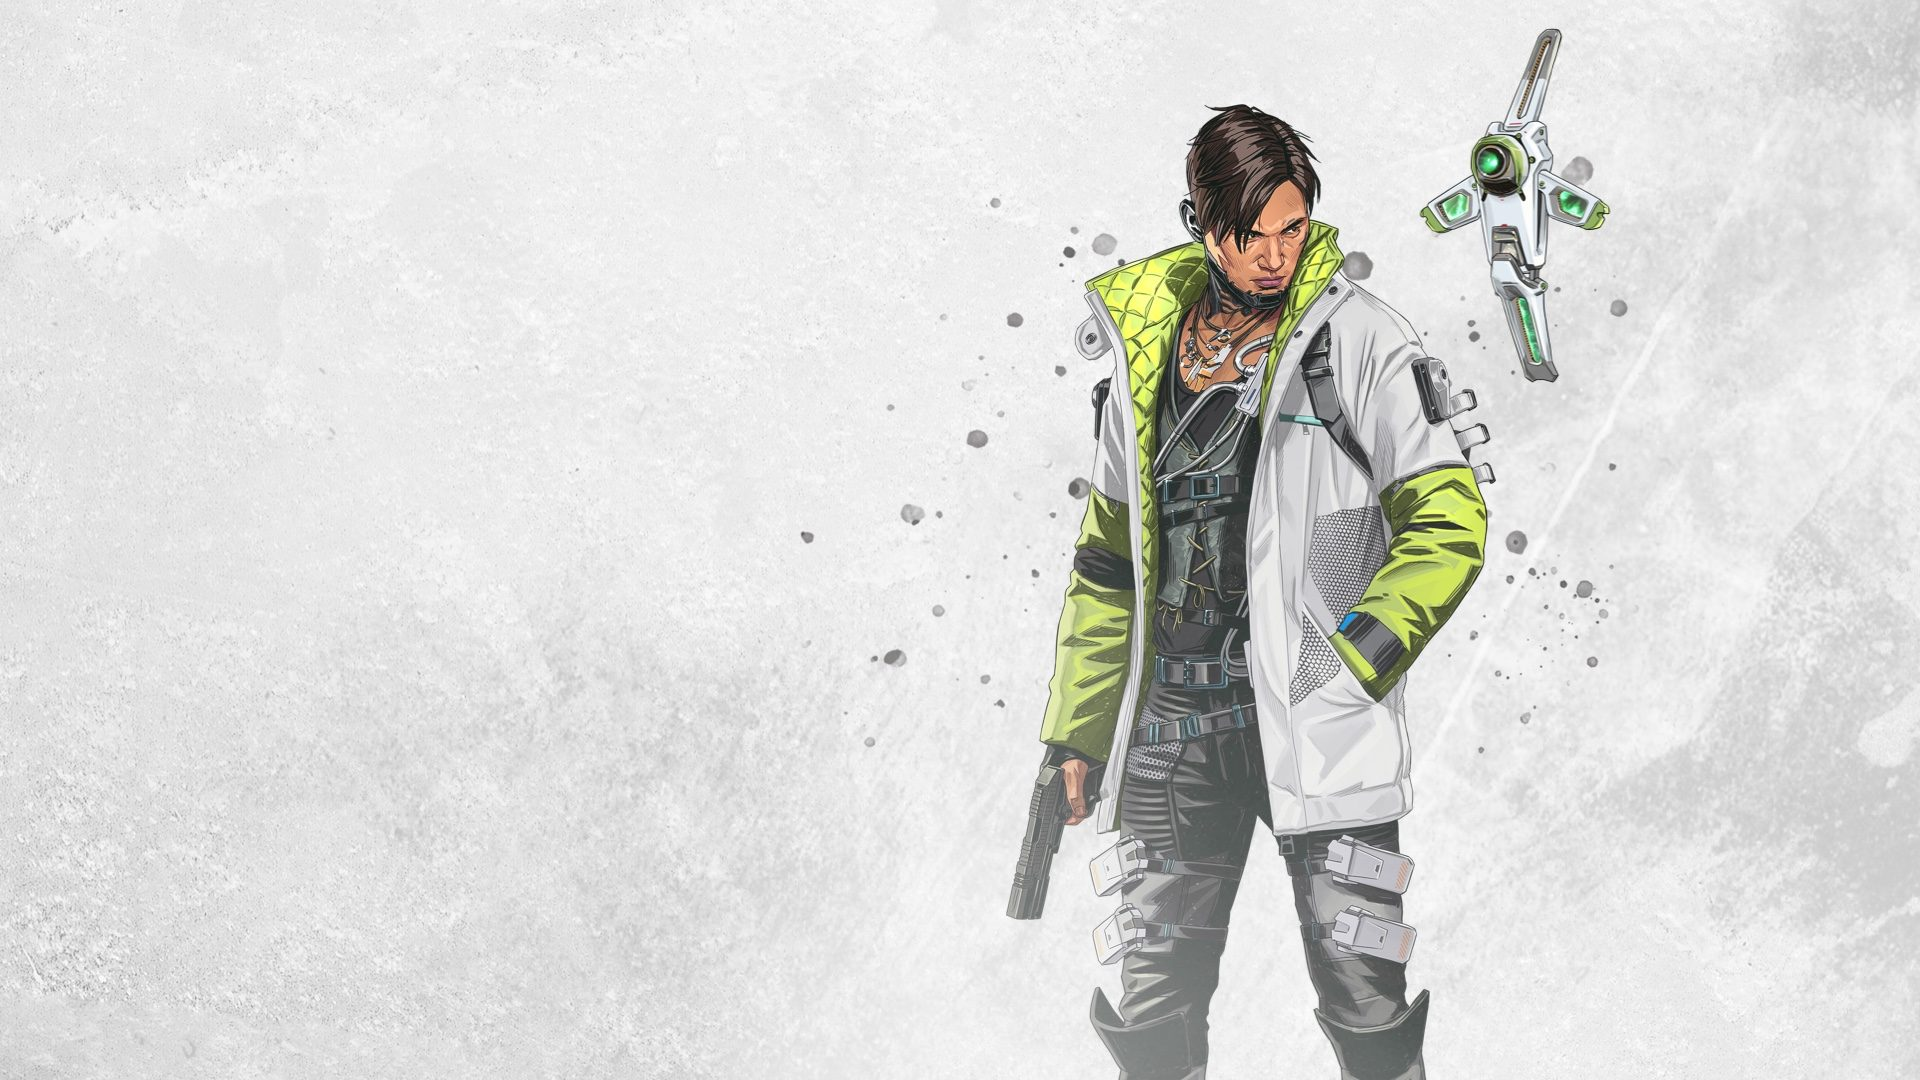 Apex Legends season 3 brings a new character named Crypto and the new Charge Rifle